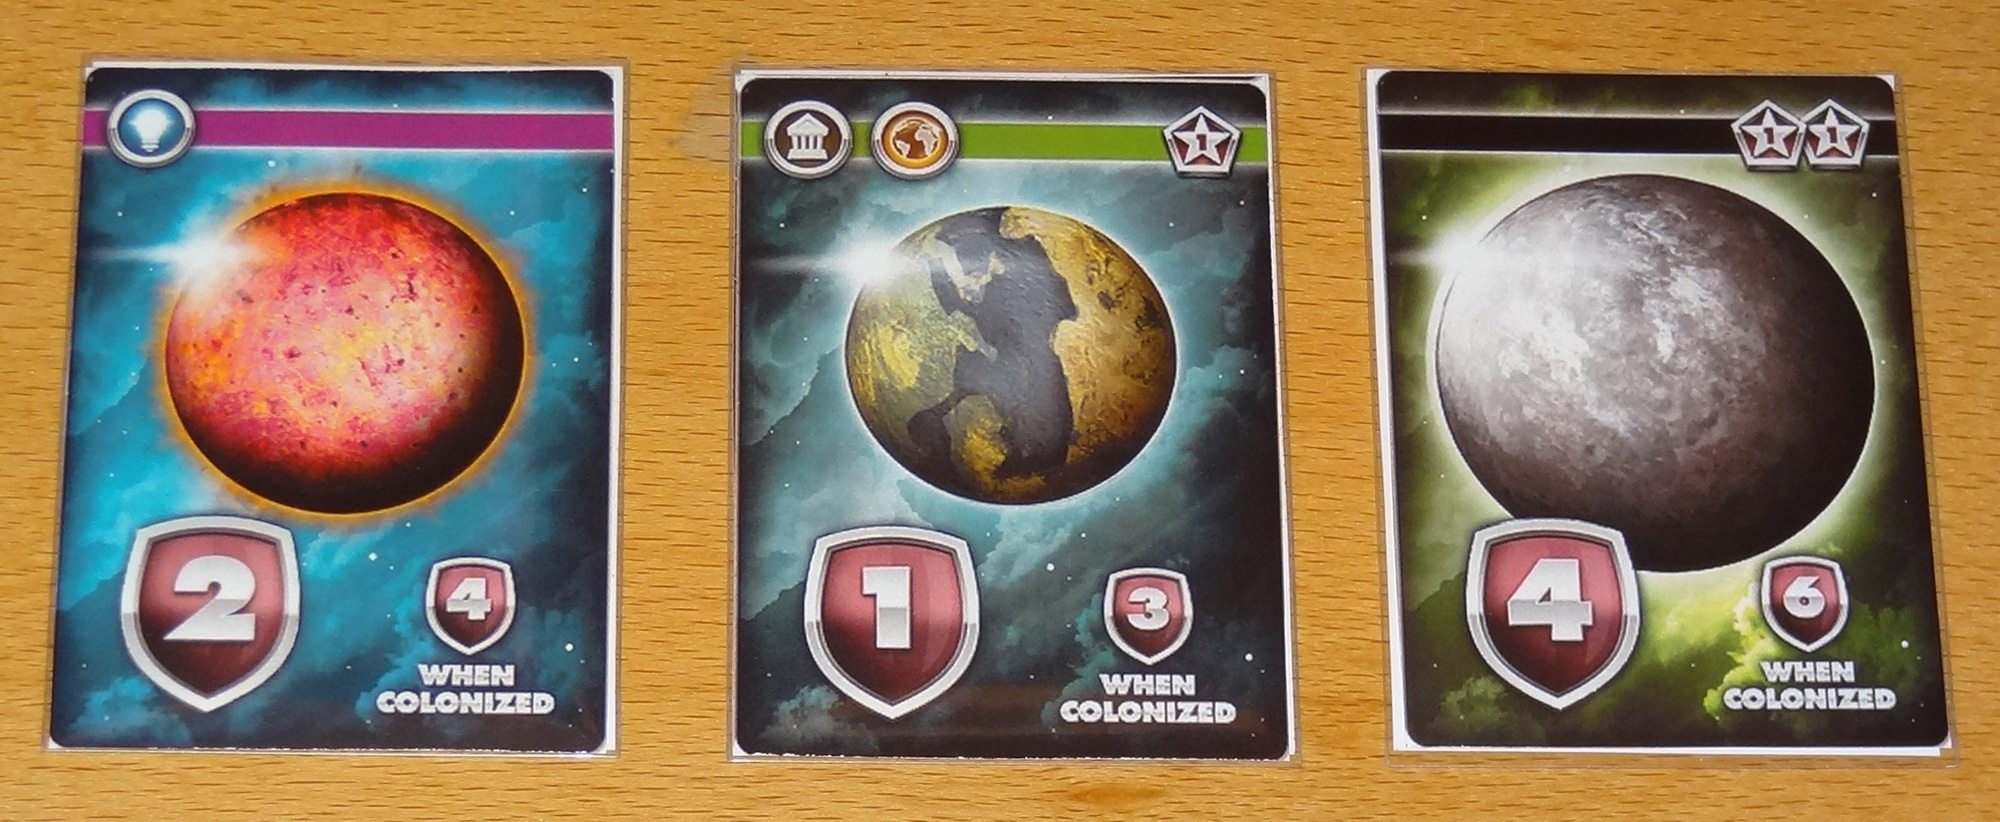 Eminent Domain Microcosm Planet cards